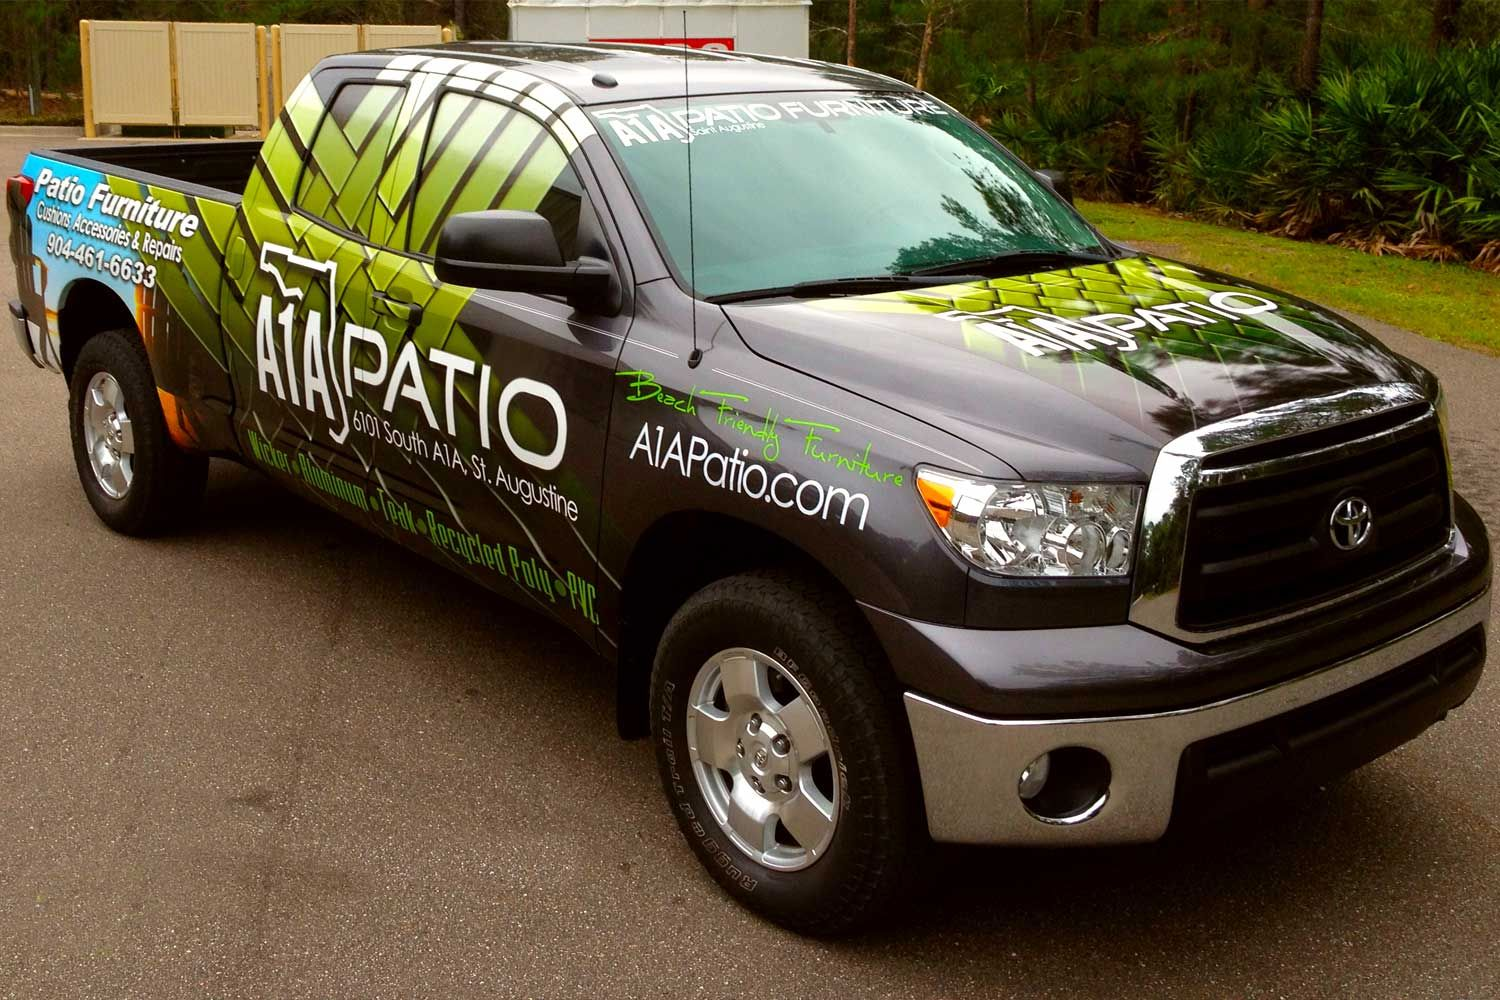 Reasons to wrap a vehicle vary, but the most common question